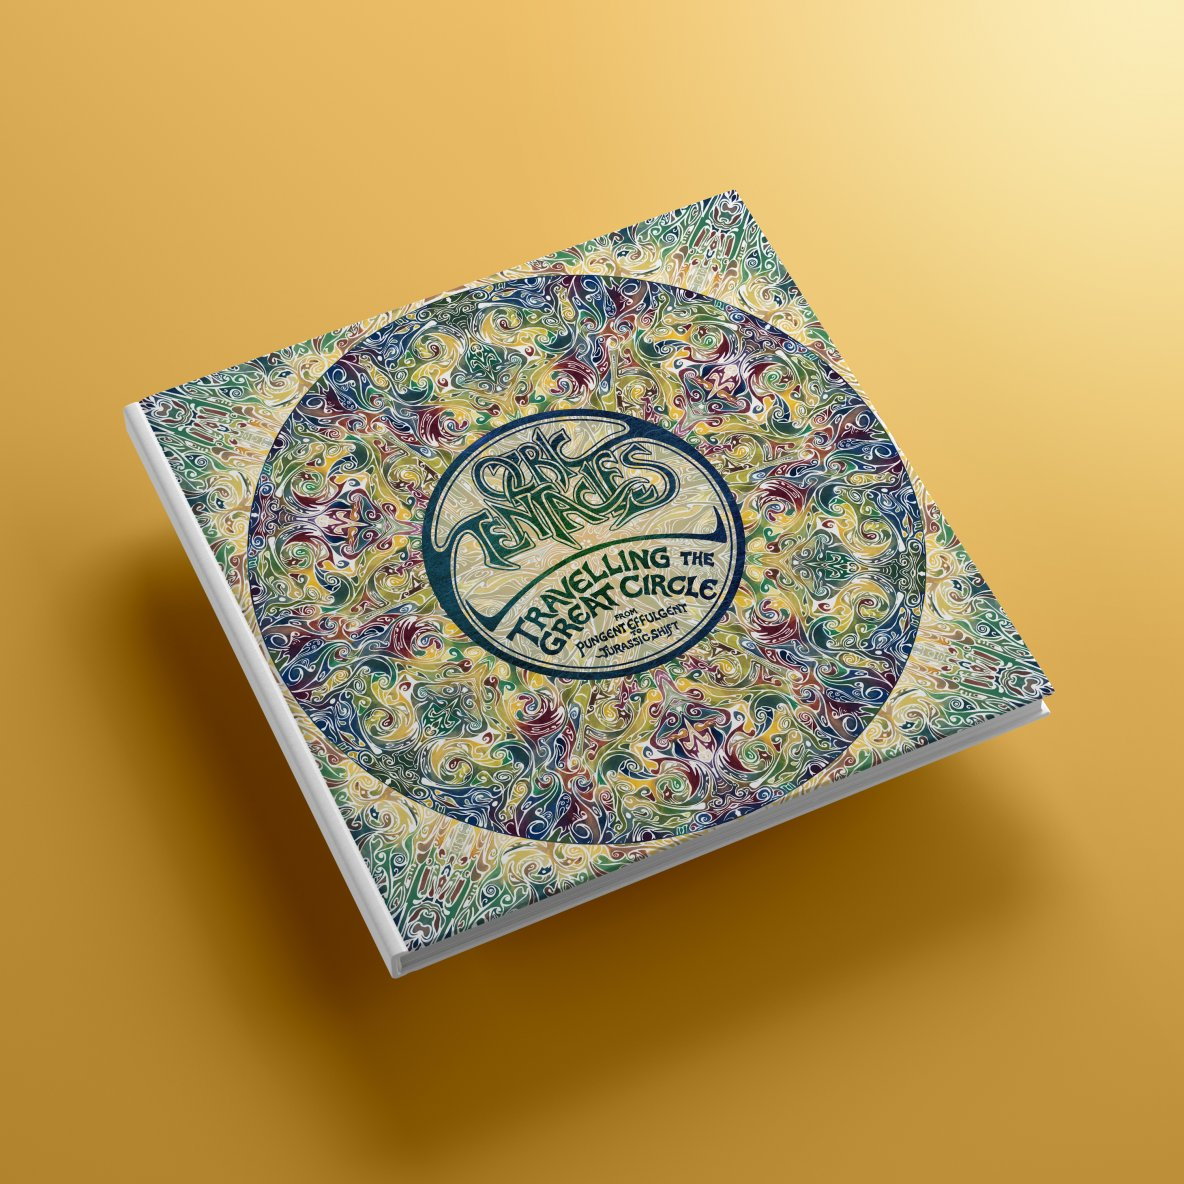 CD pack on a yellow background